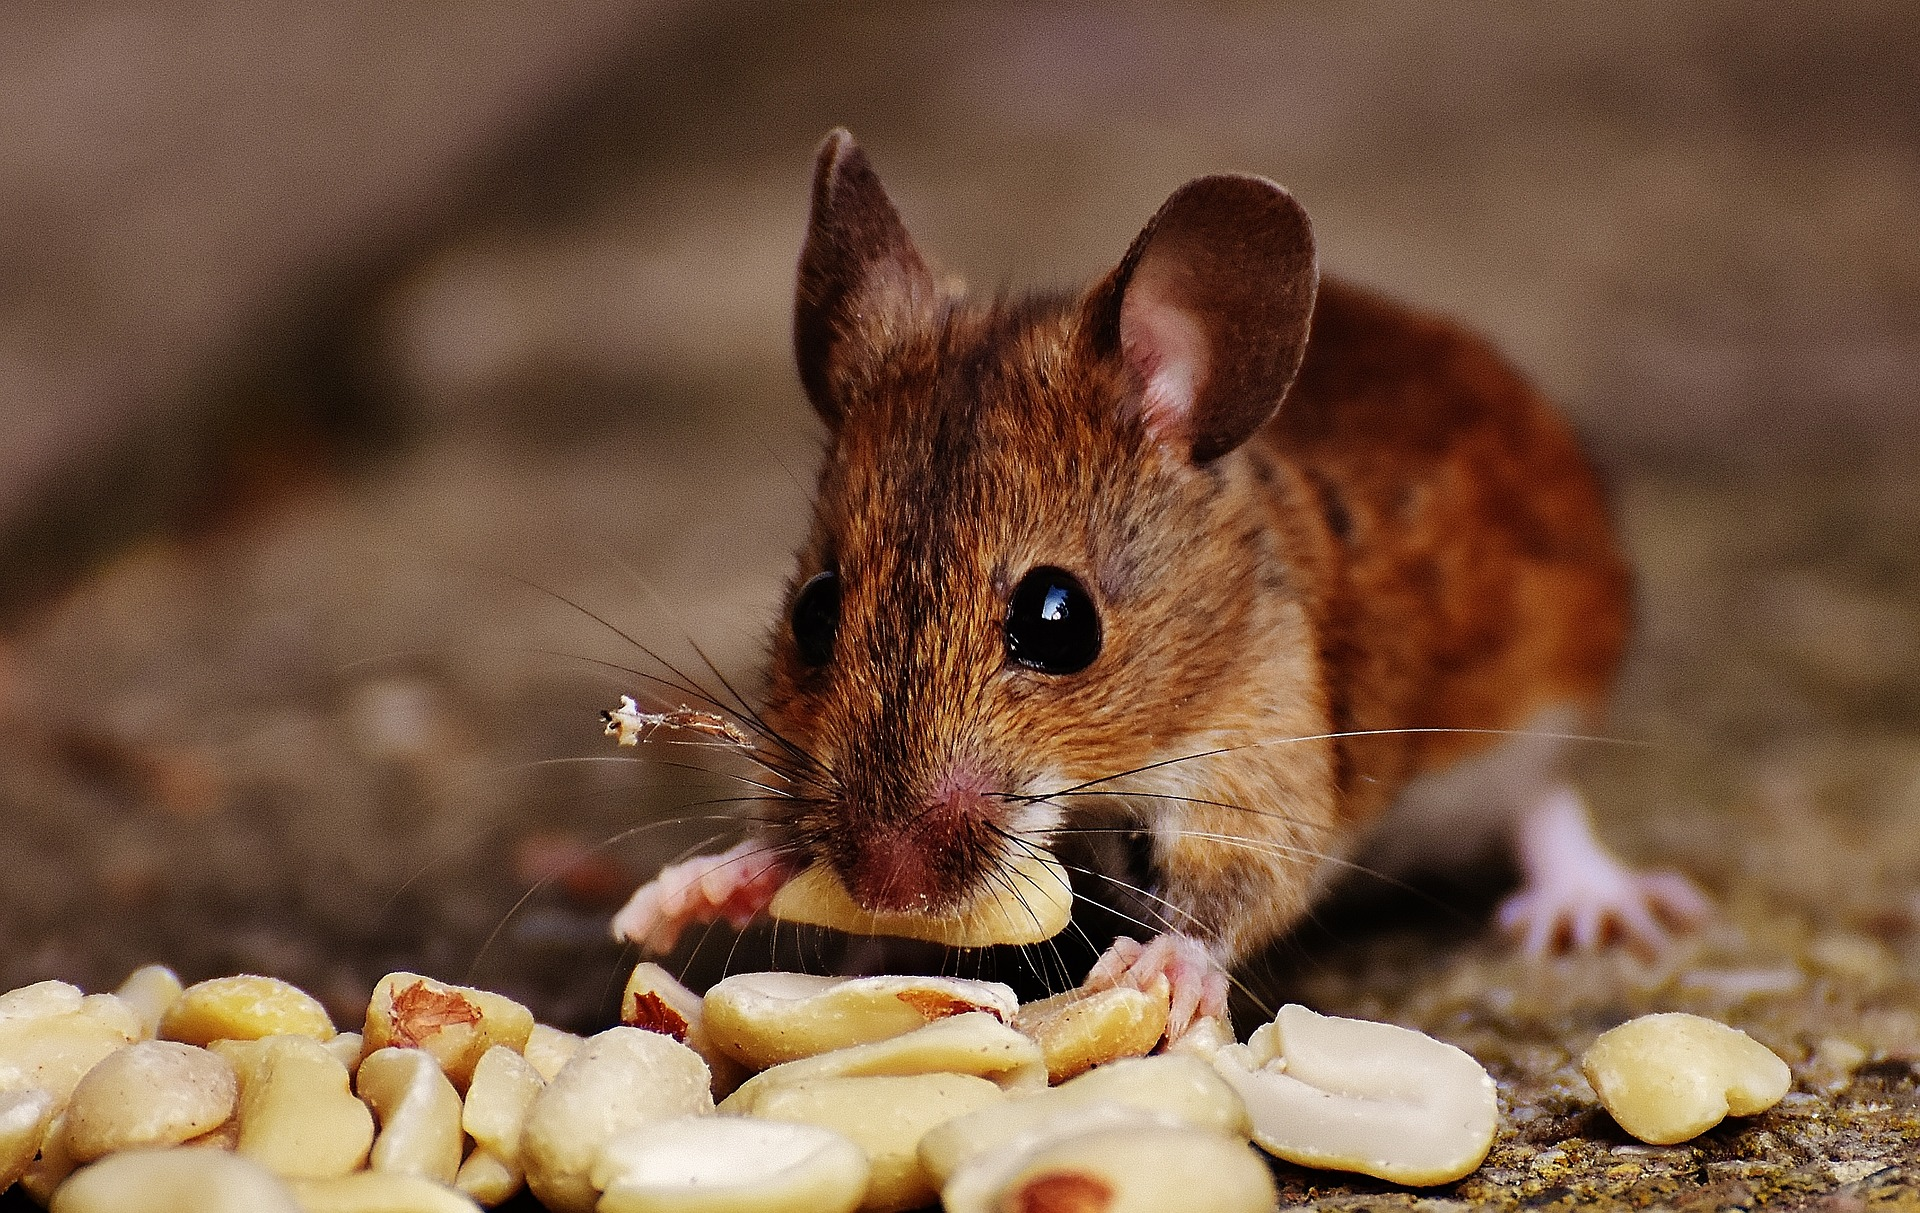 Featured image: Mice lacking a sense of smell stay thin